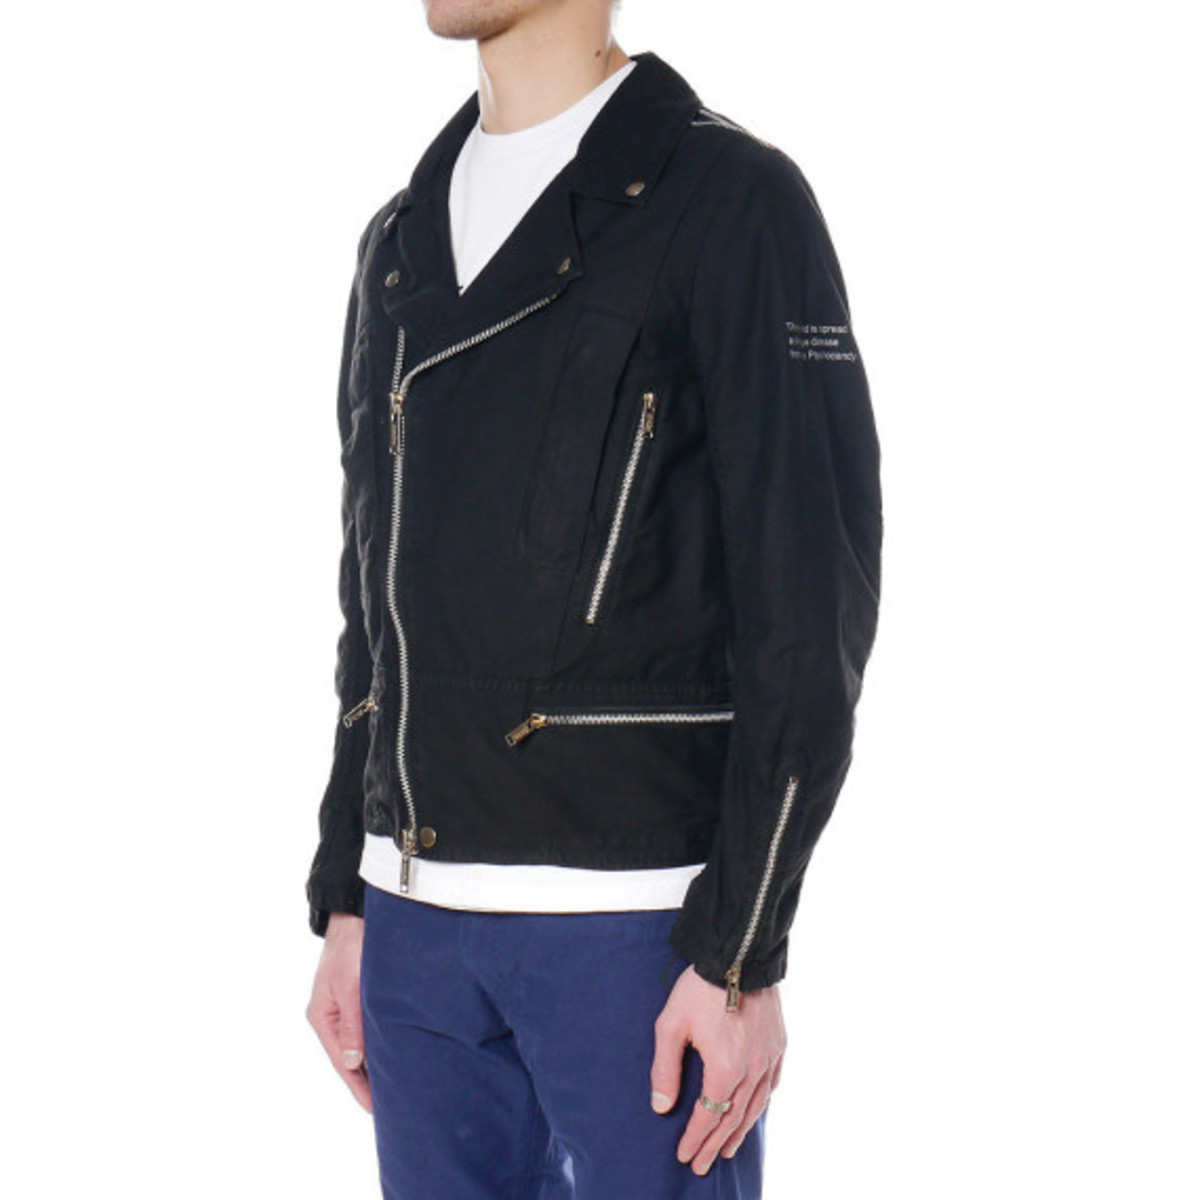 undercover-m4201-2-jacket-03